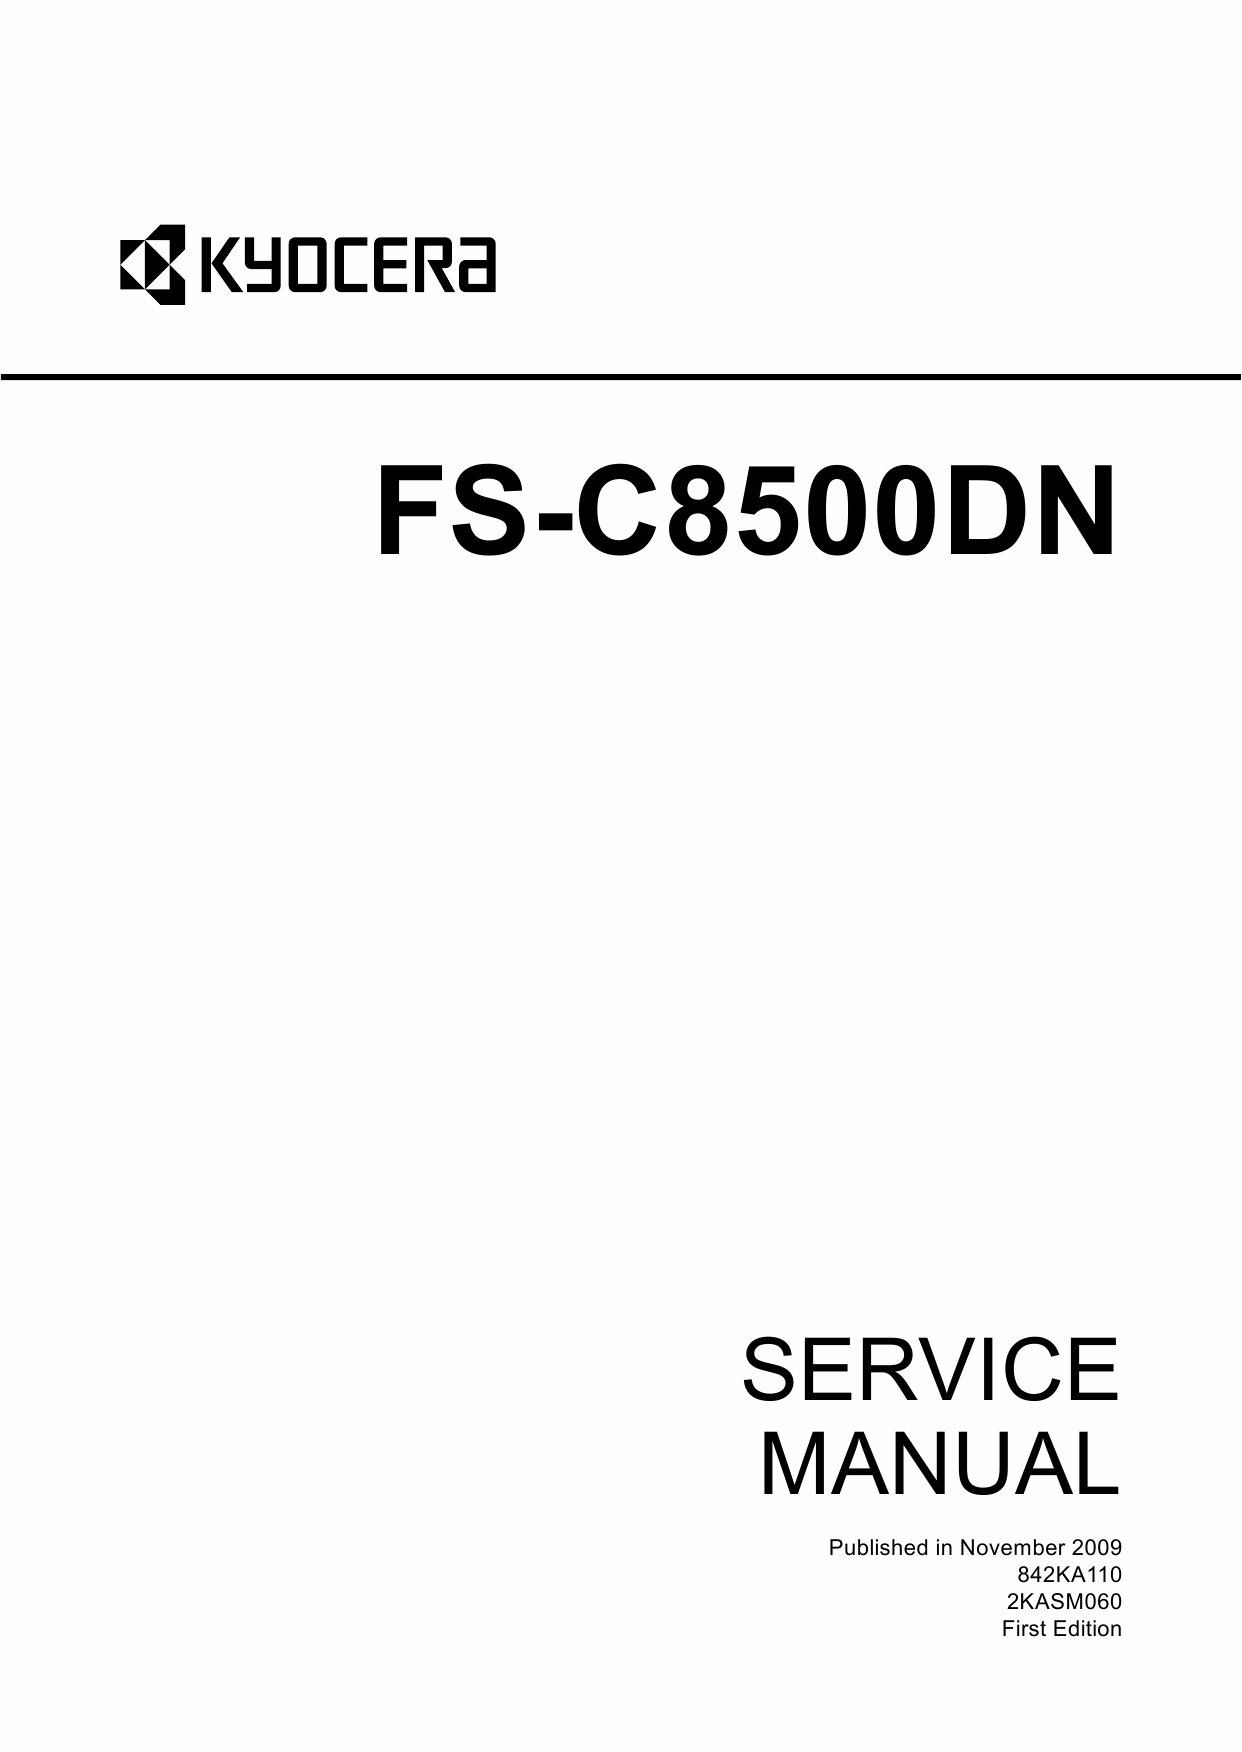 KYOCERA ColorLaserPrinter FS-C8500DN Service Manual-1